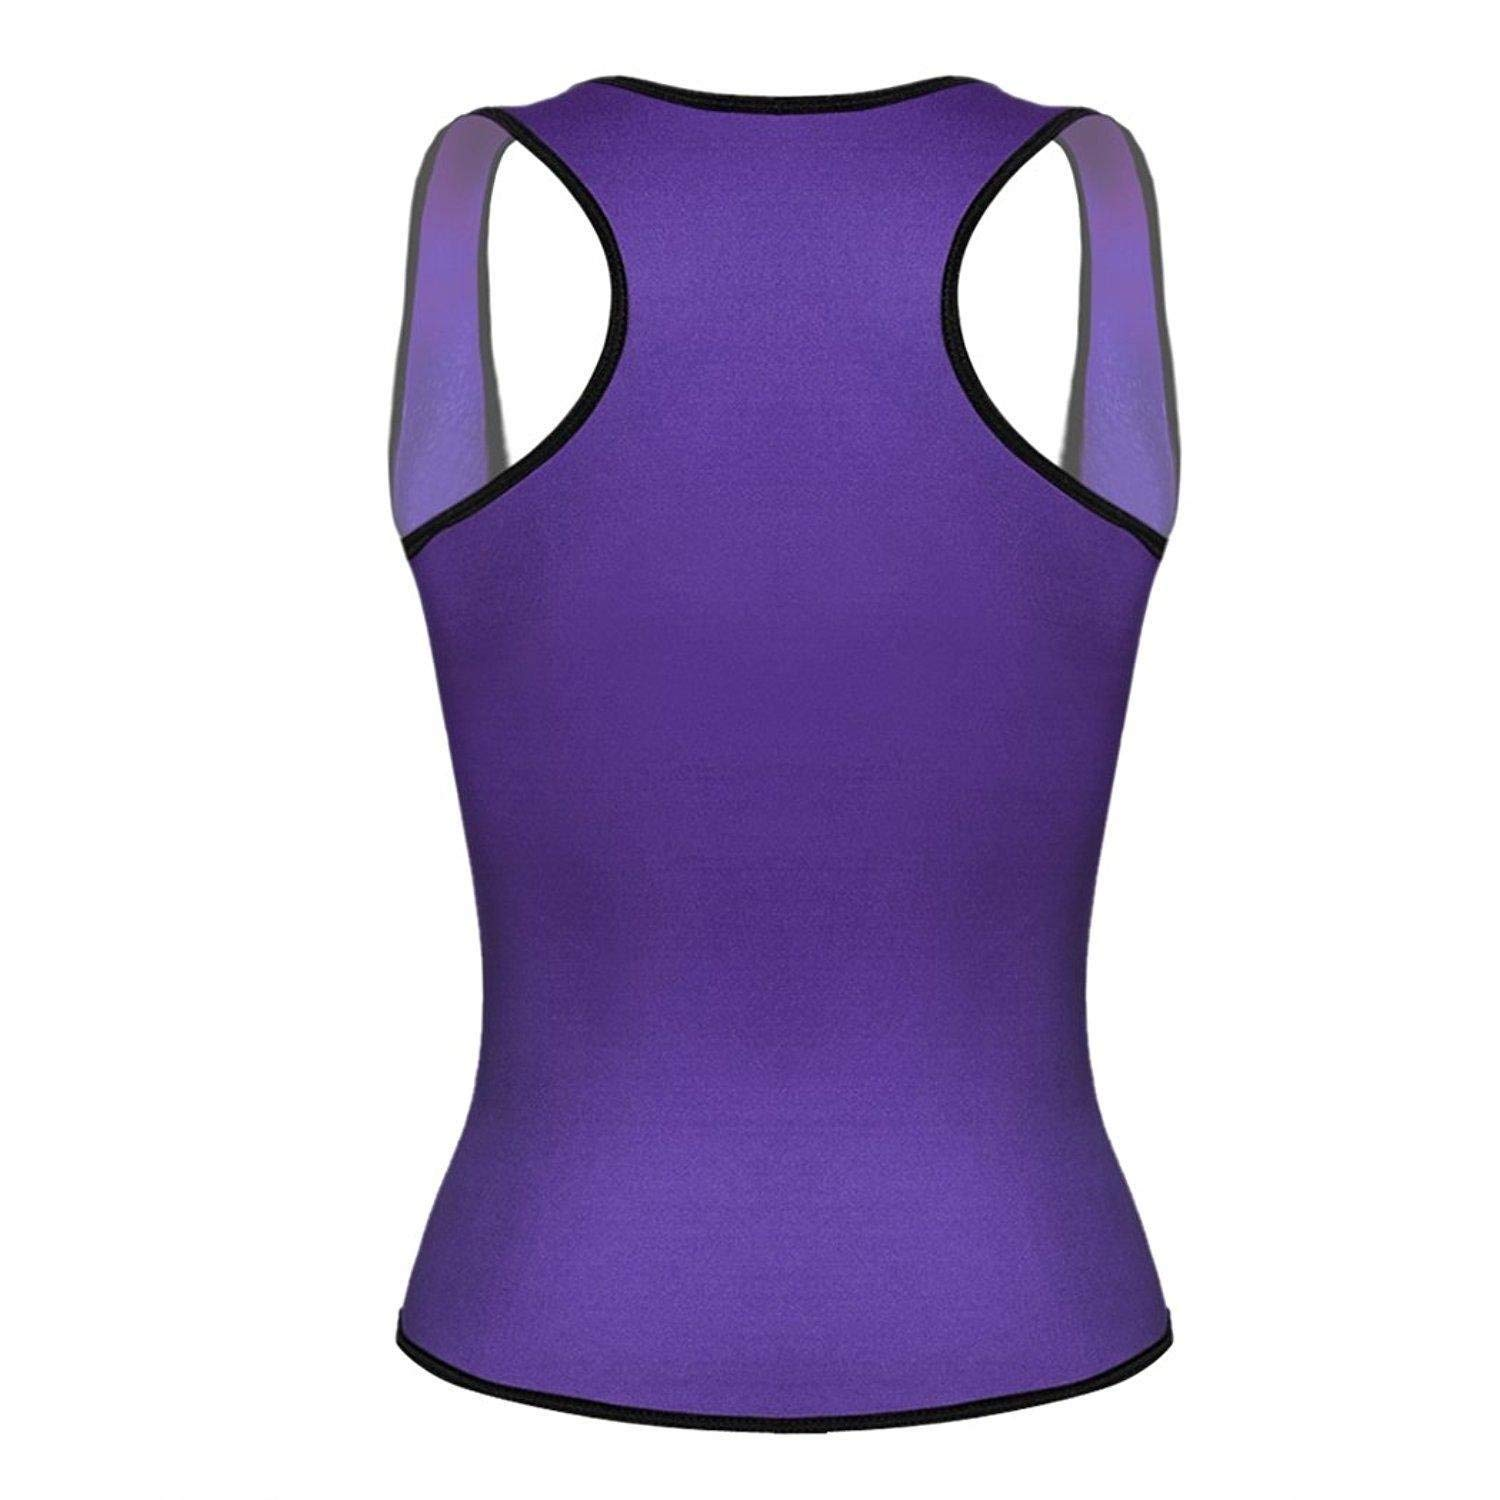 0a2915f4c58 Get Quotations · Vividy Waist Cincher Tank Top Vest ODY Shapers for Weight  Loss Waist Trainer Corset for Weight